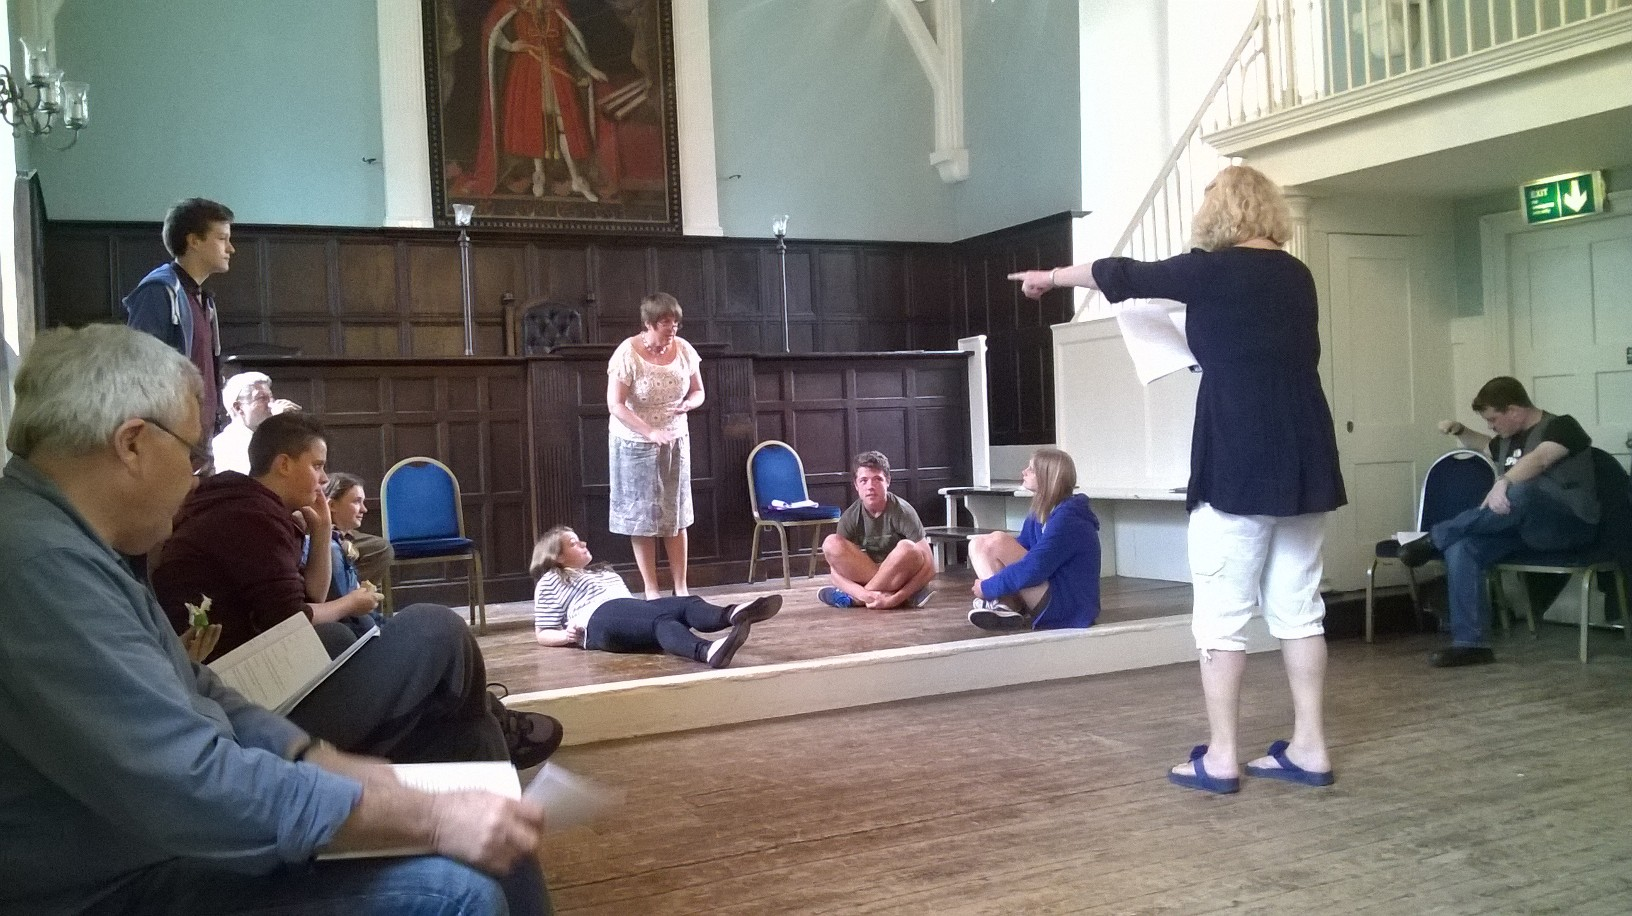 BLOG A Labour Of love blog - In Rehearsals!